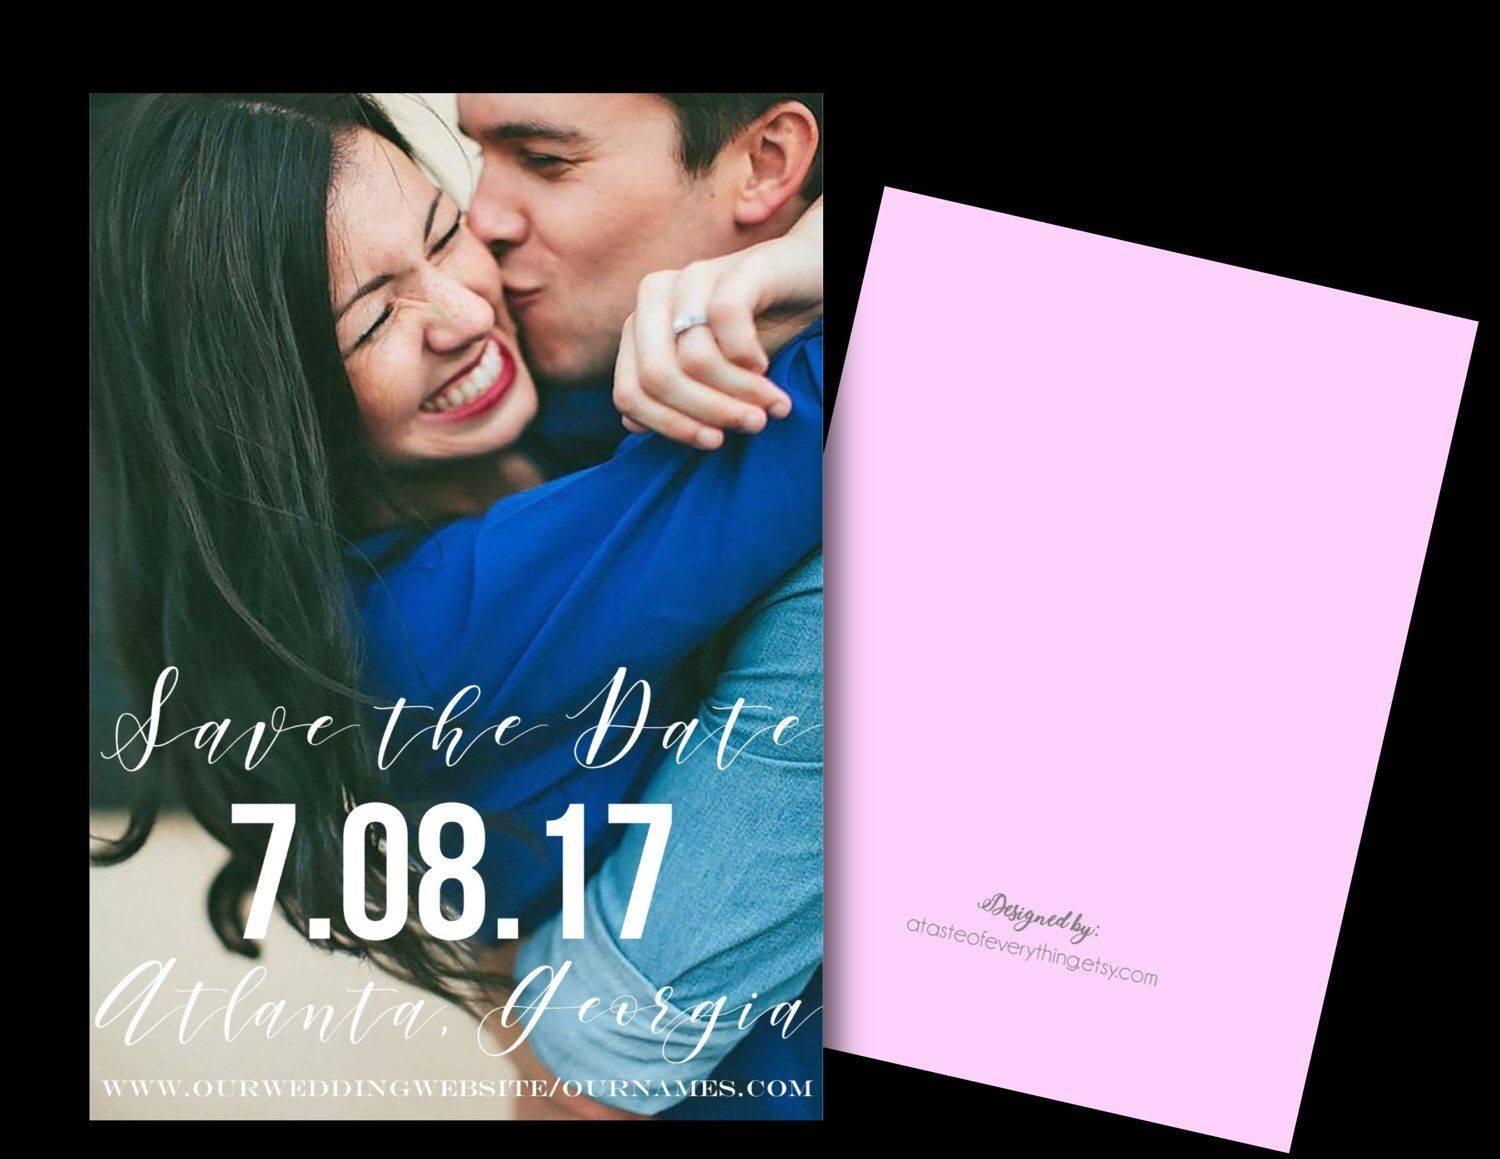 Fully customized wedding photo save the date fall 2017 2018 Invitation photo invitation diy or printed pink blush spring summer wedding by atasteofeverything on Etsy https://www.etsy.com/listing/509736251/fully-customized-wedding-photo-save-the